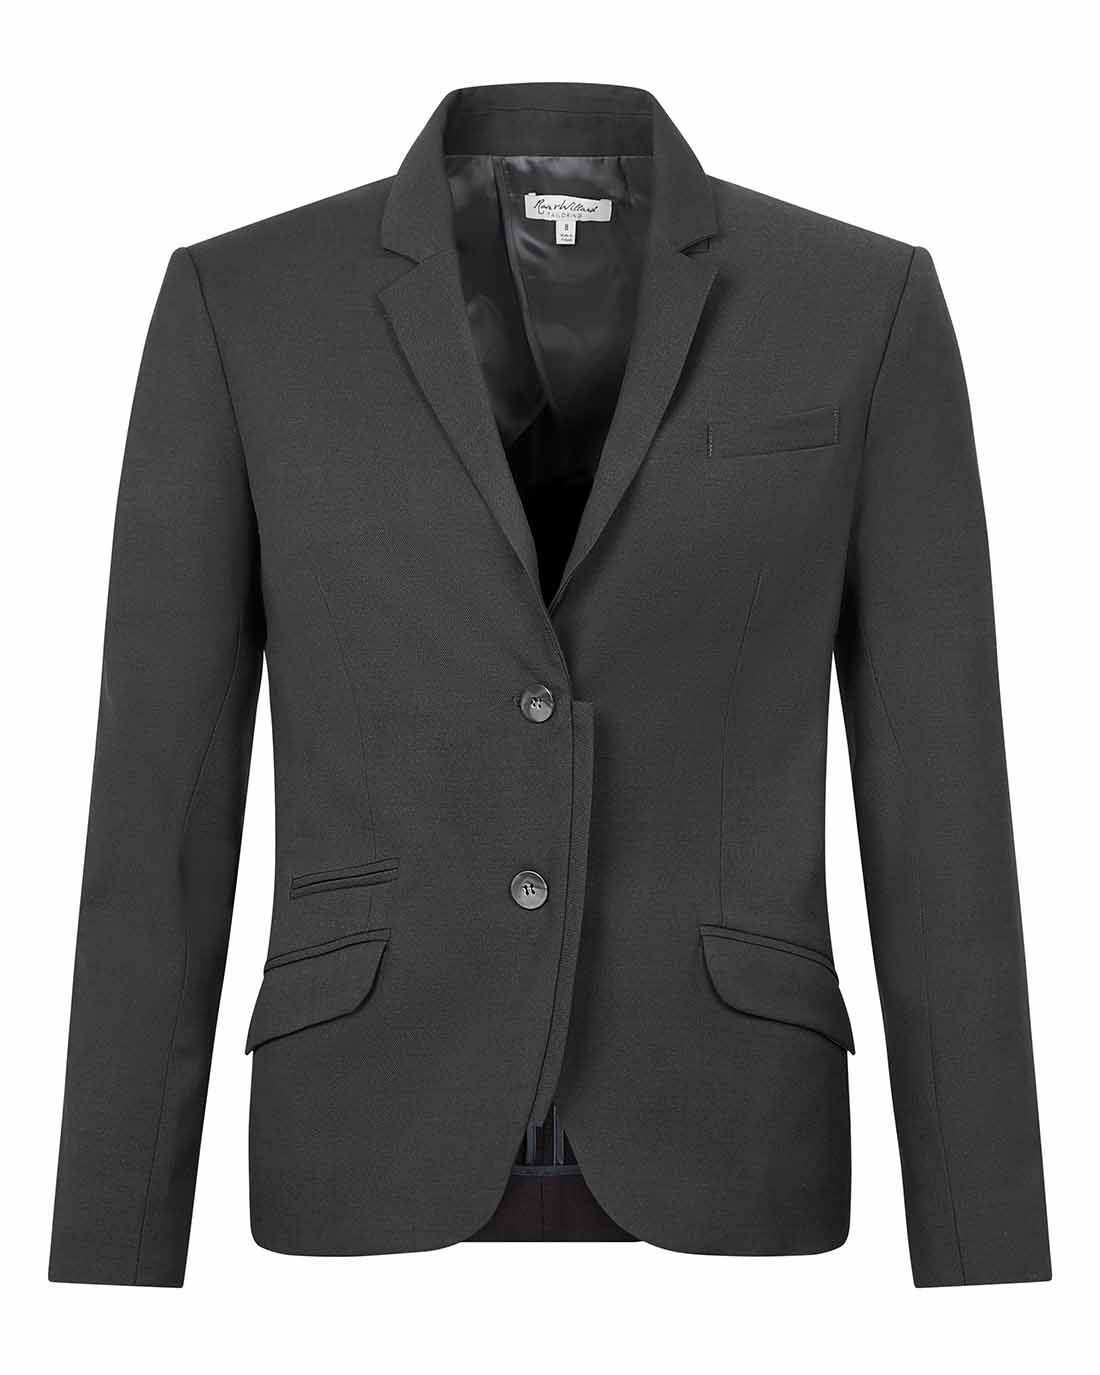 Women's luxury Savile Row style tailored suit jacket for the office dark grey